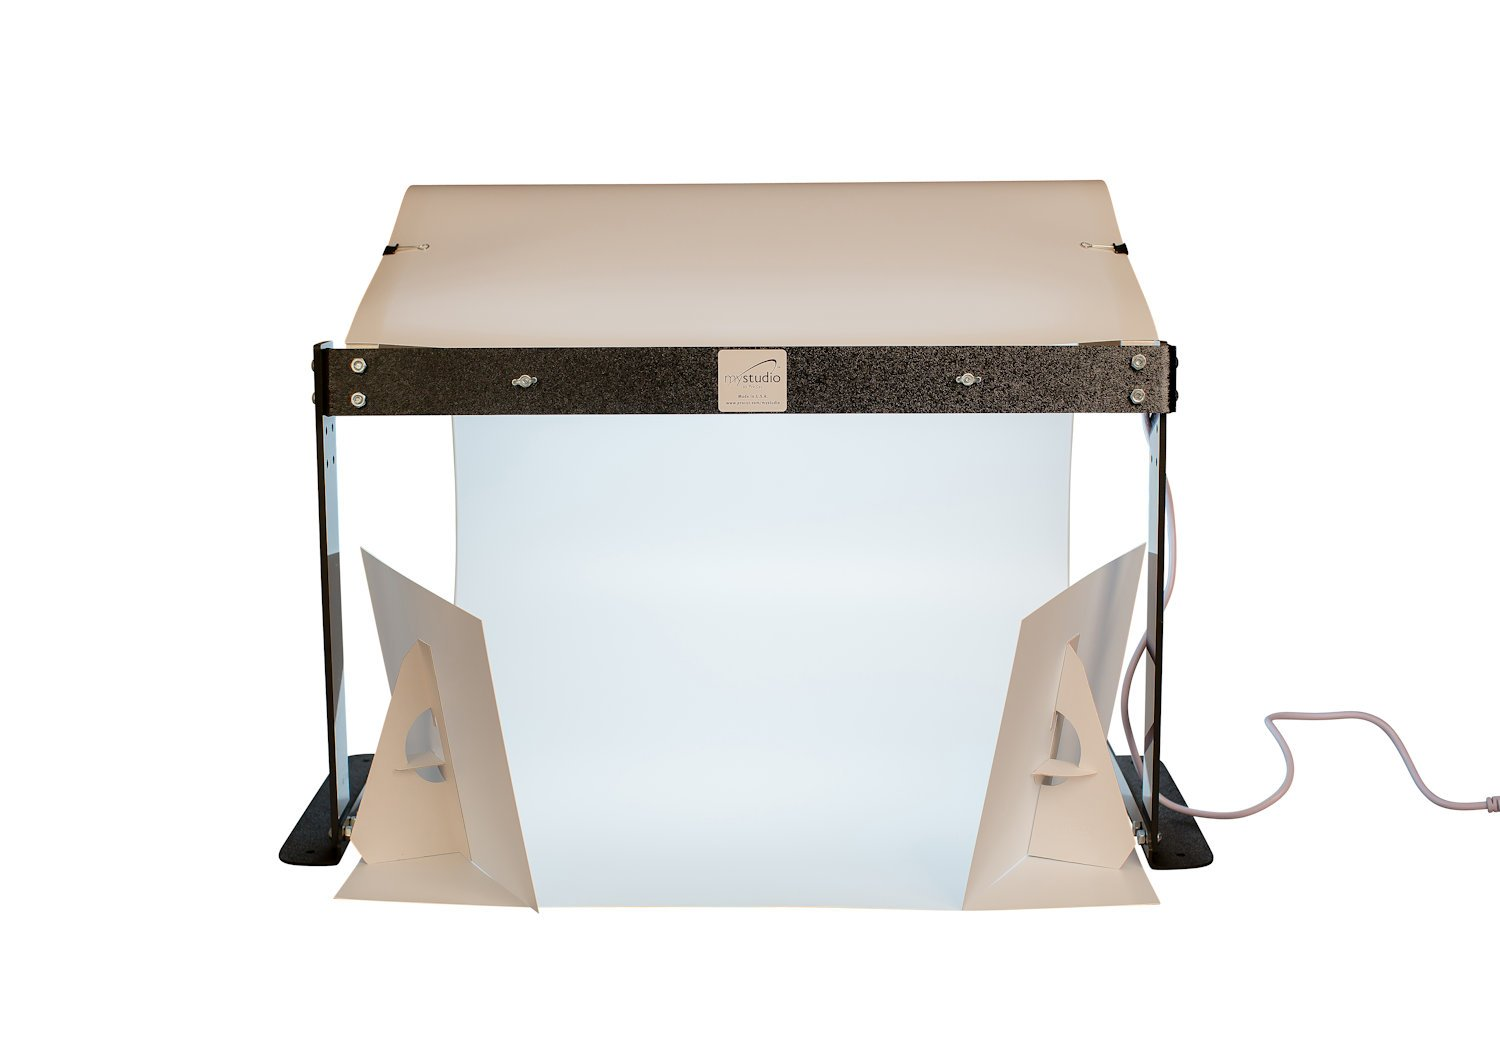 MyStudio PS5LED Tabletop Lightbox Photo Studio WithLEDLighting For Product Photography, White by MyStudio